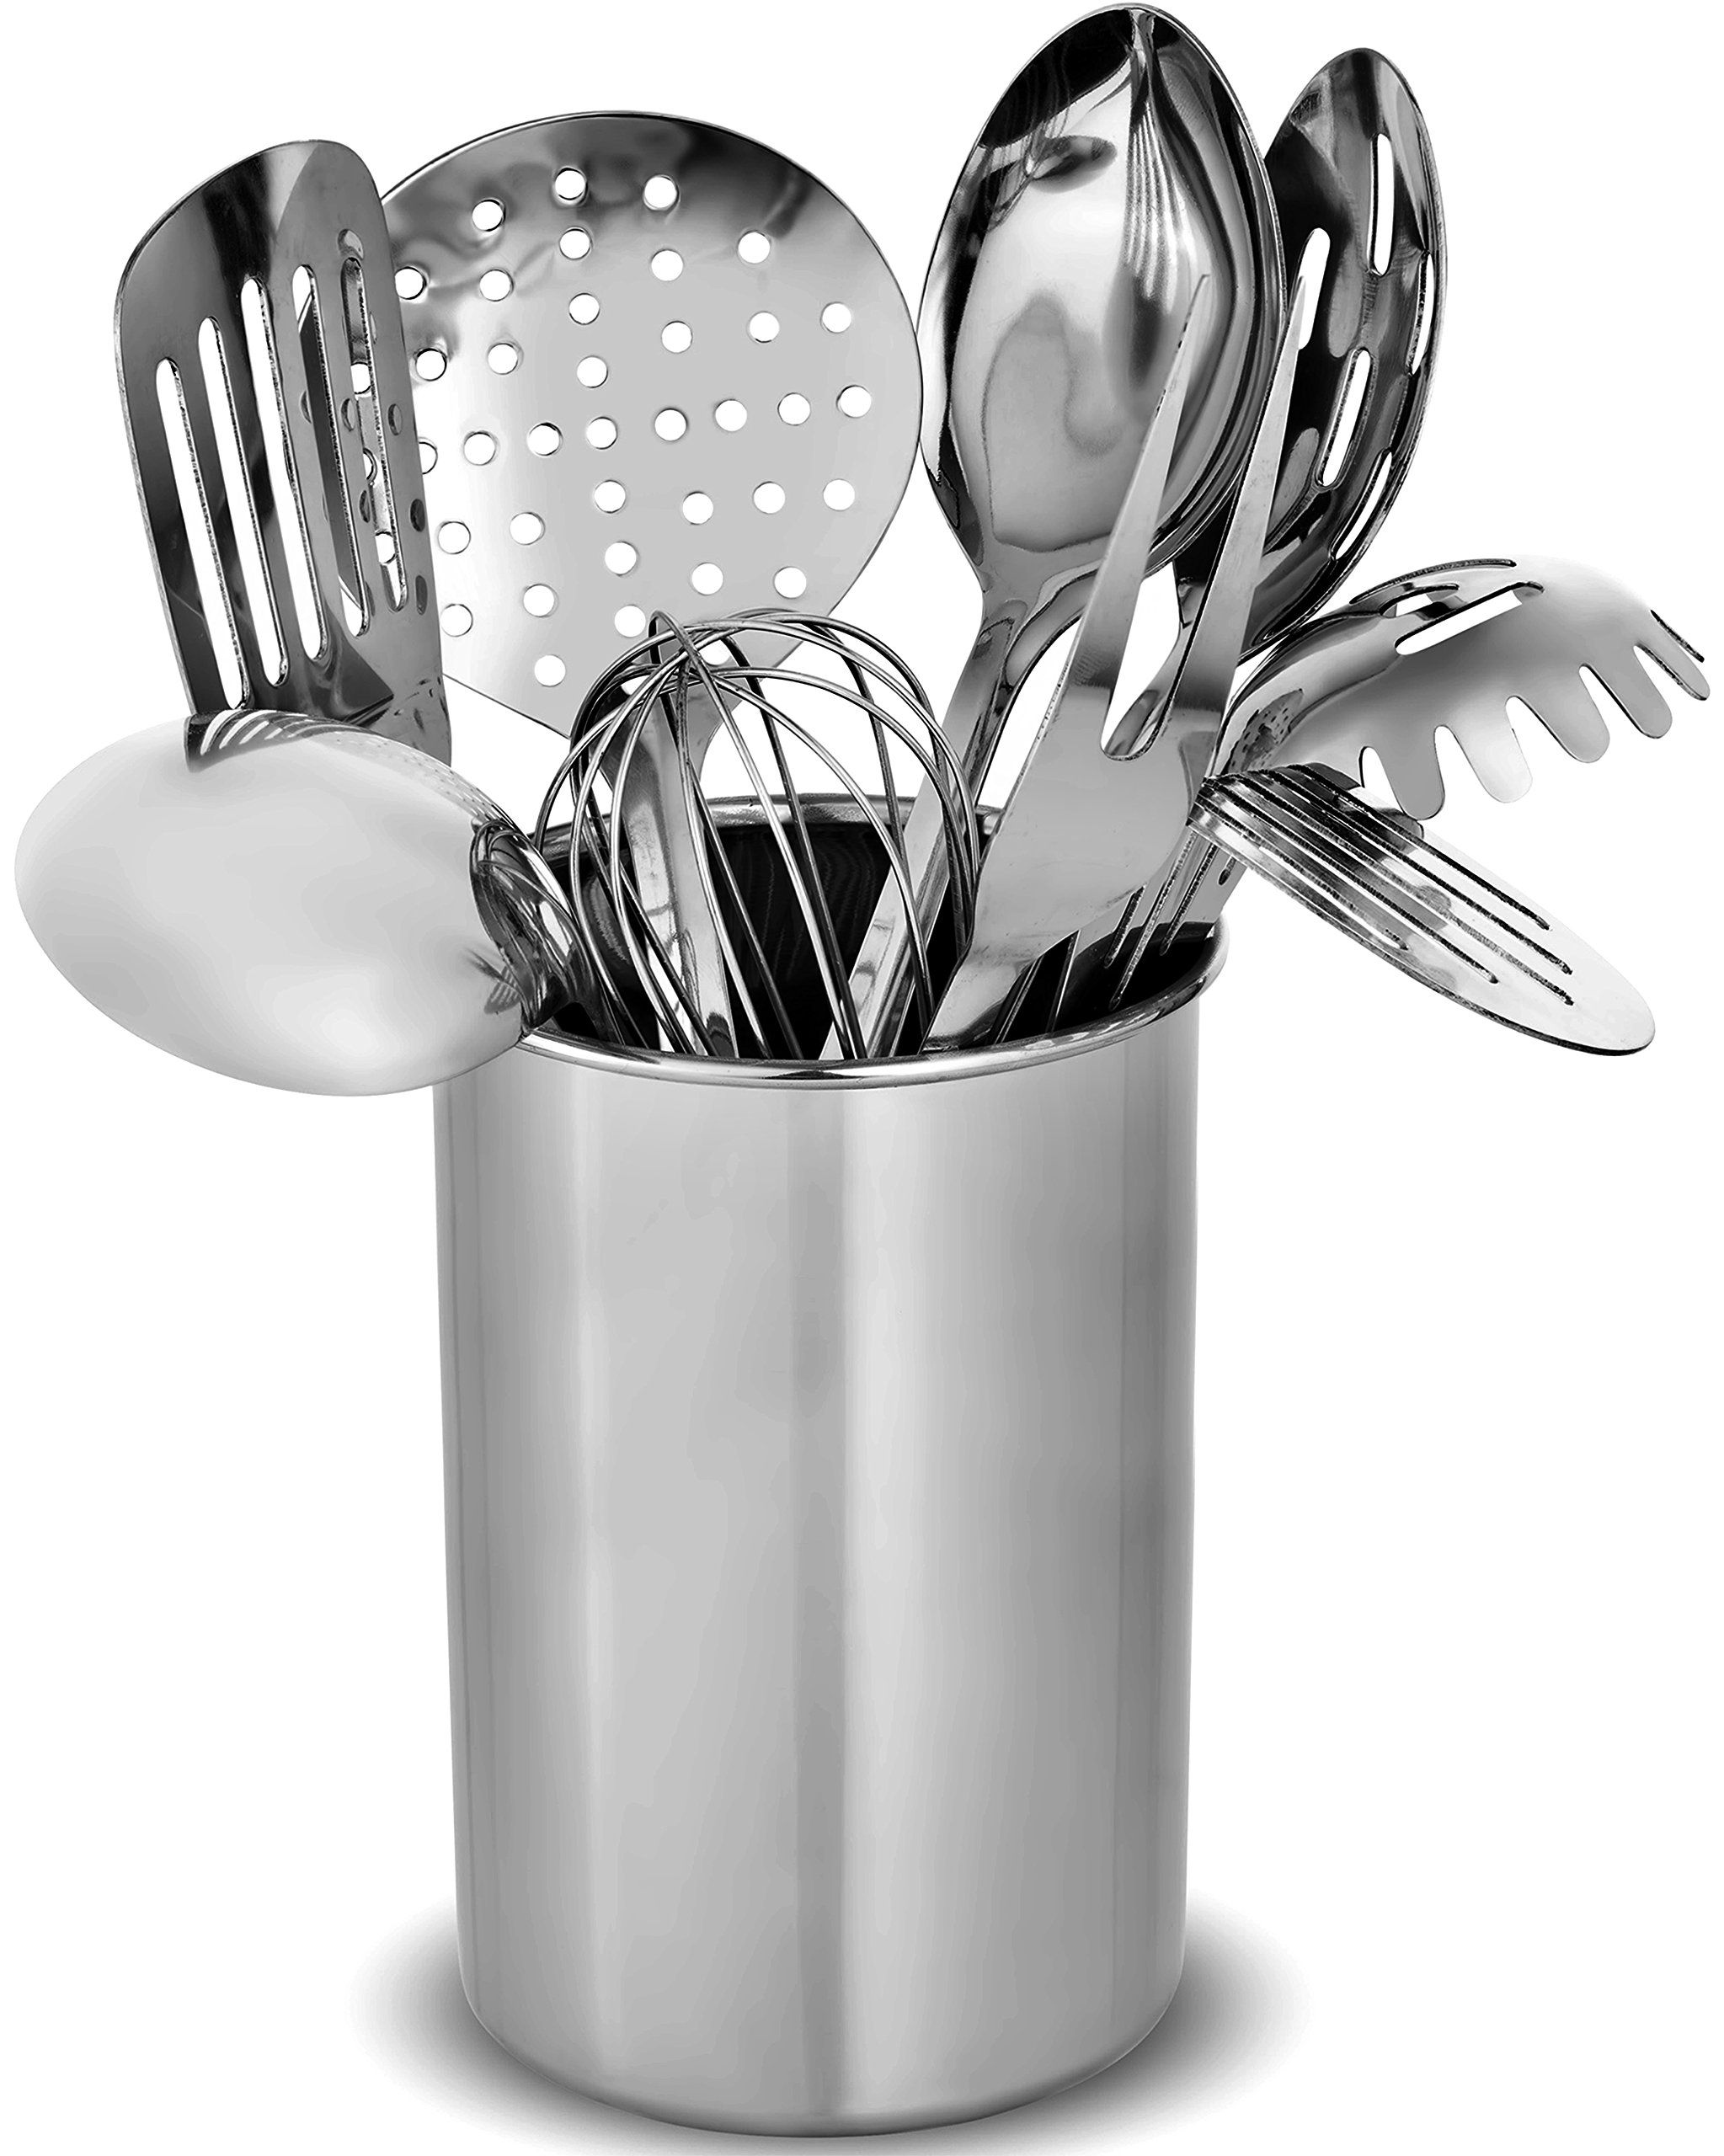 FineDine Premium Stylish 10-Piece Kitchen Utensil Set, Modern Stainless Steel Gadgets for Everyday Cooking - Turner, Spaghetti Server, Ladles, Spoons, Whisk, Meat Fork, and Tool Set Holder by FINEDINE